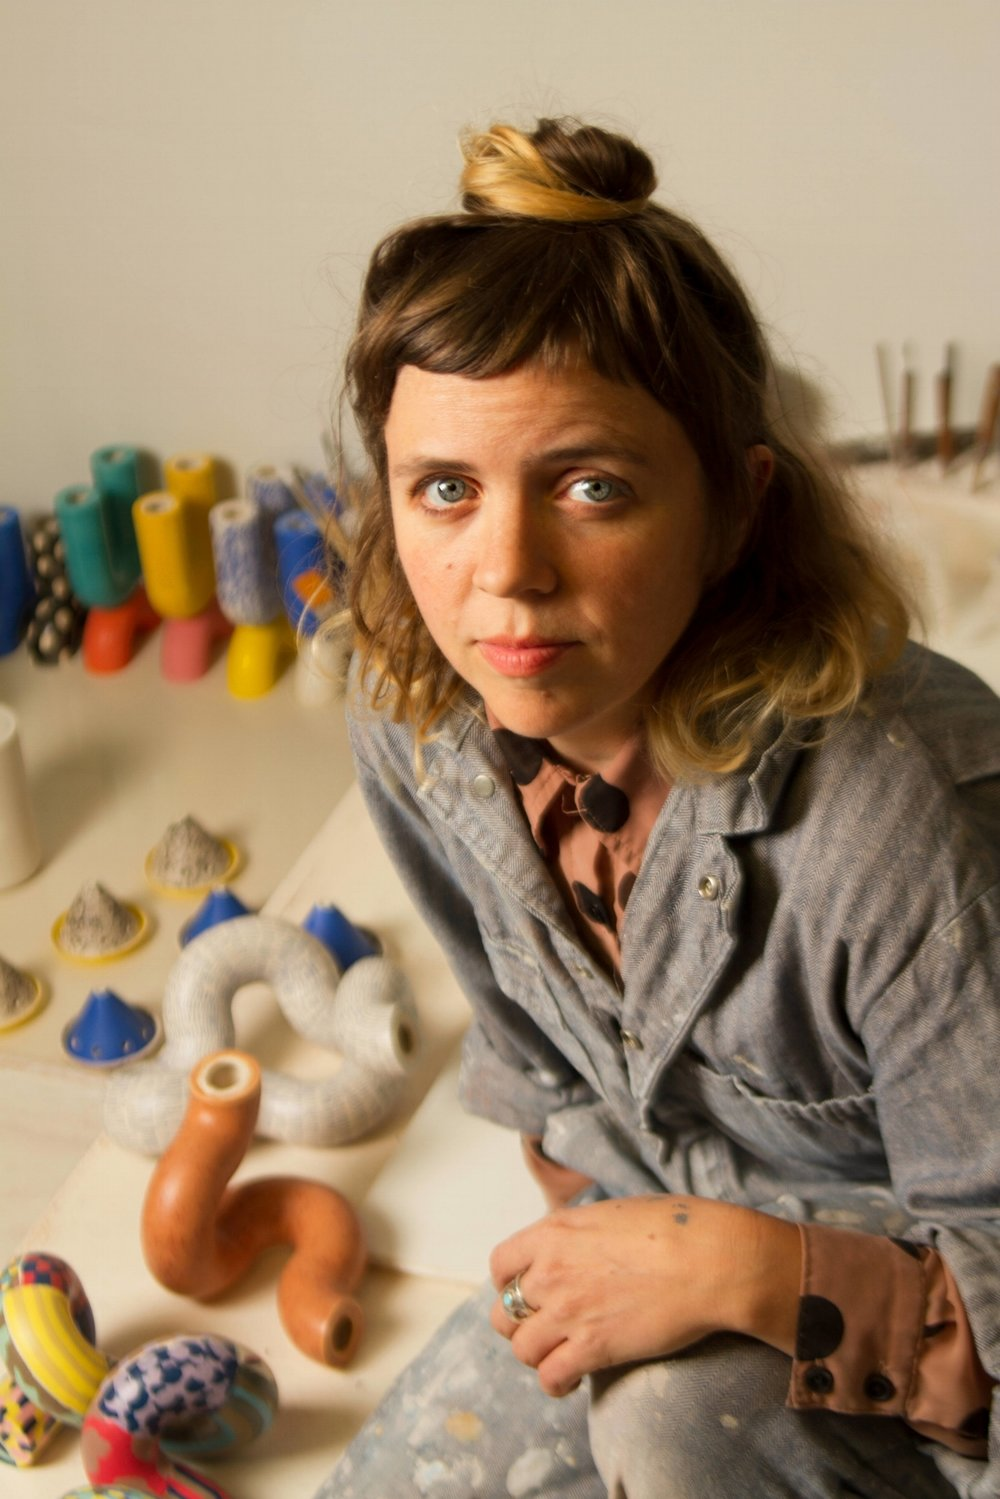 - Erin Smith works out of her windowless ceramics studio in South Minneapolis. She earned her BFA in Product Design from Parsons School of Design. All items are hand-made, no two are exactly alike.